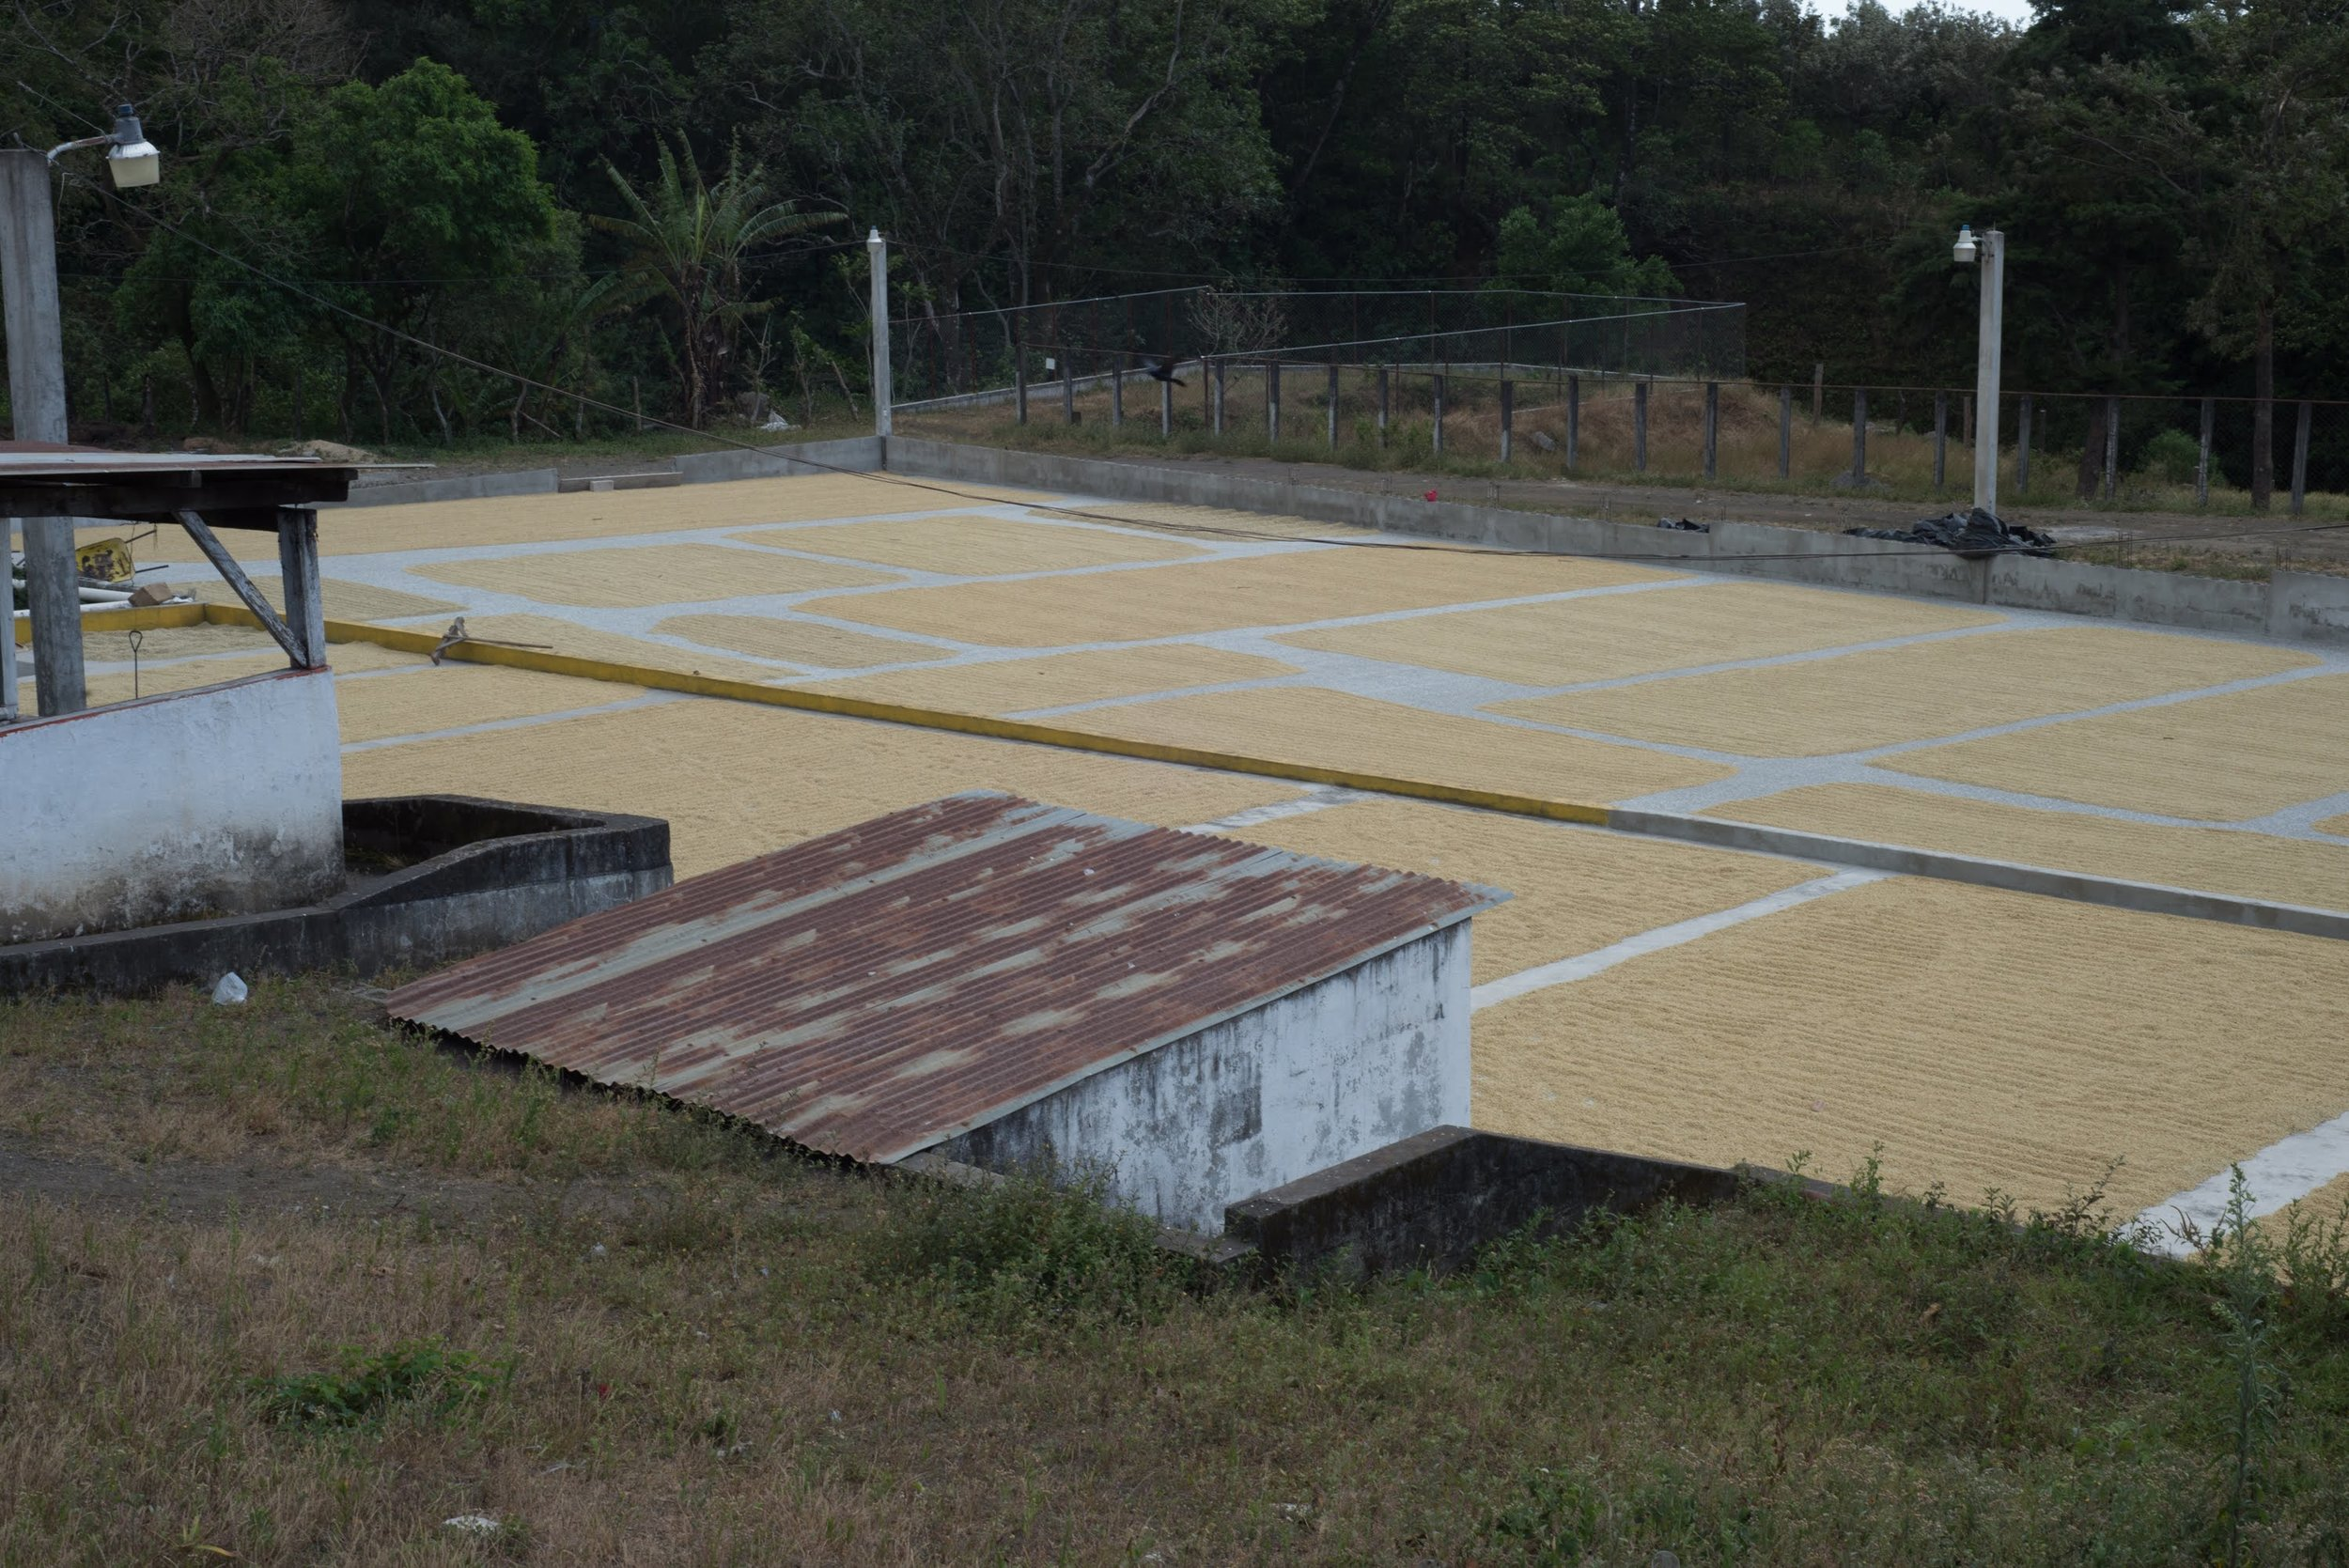 Drying Patios and Separated Lots